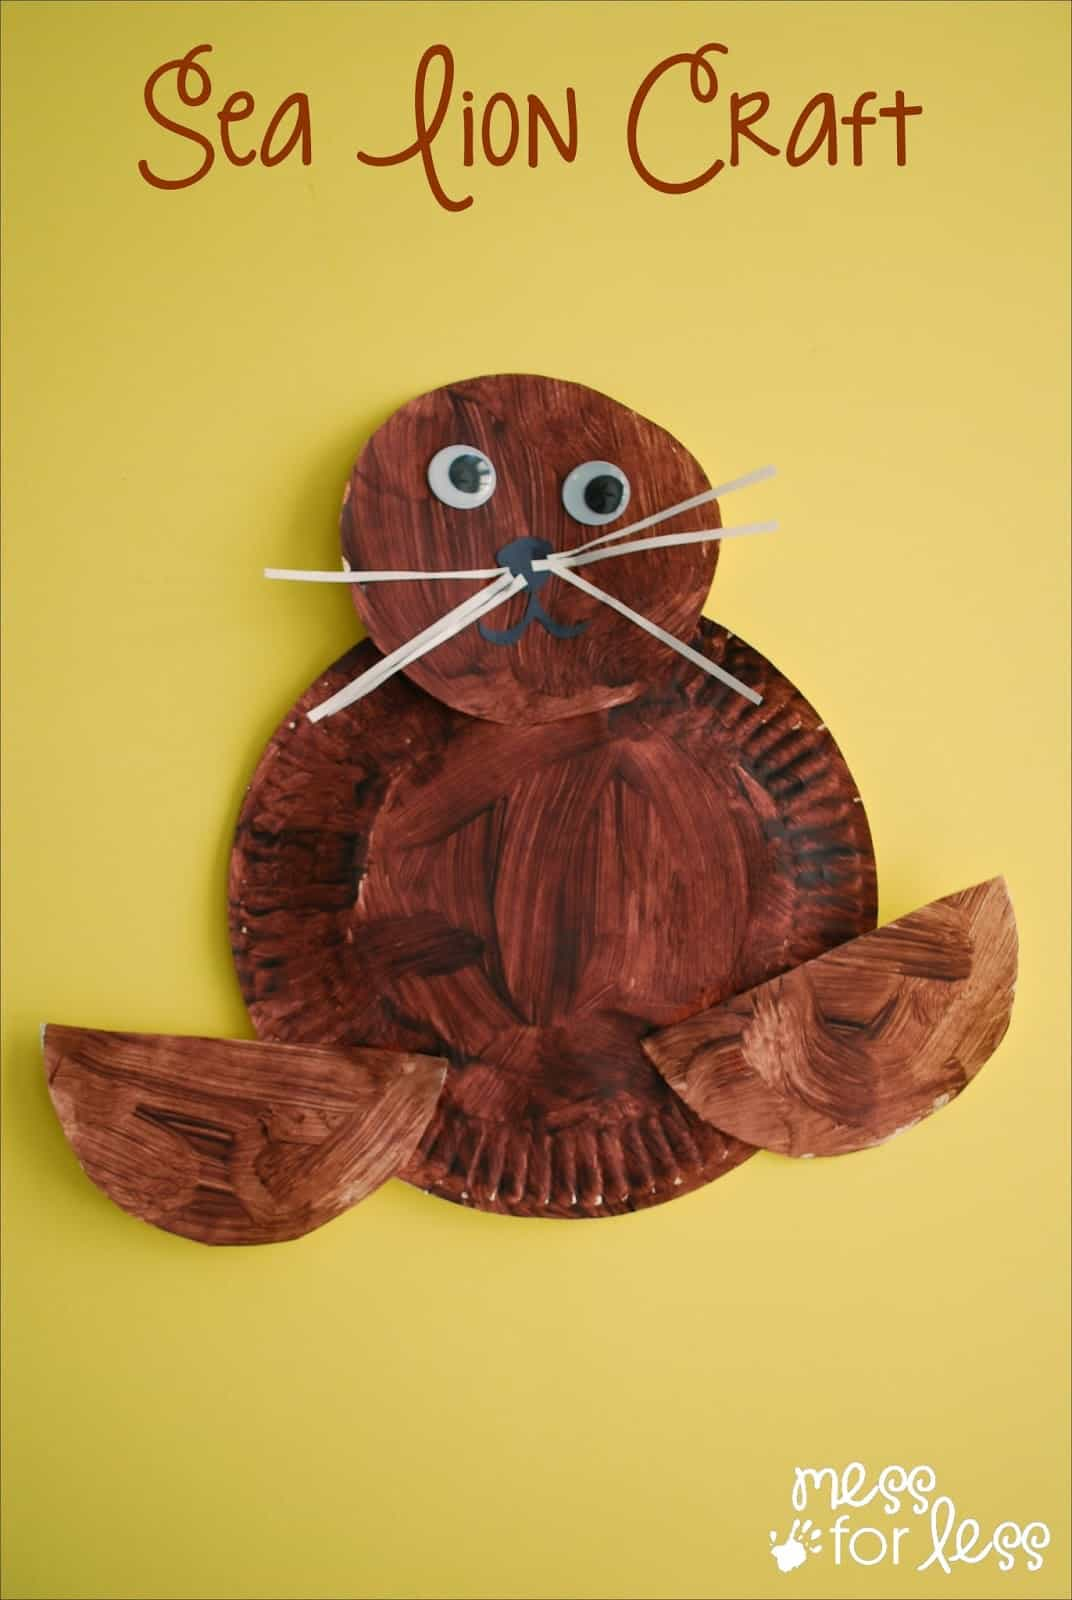 Uniquely californian sea lion craft mess for less for Lion crafts for toddlers